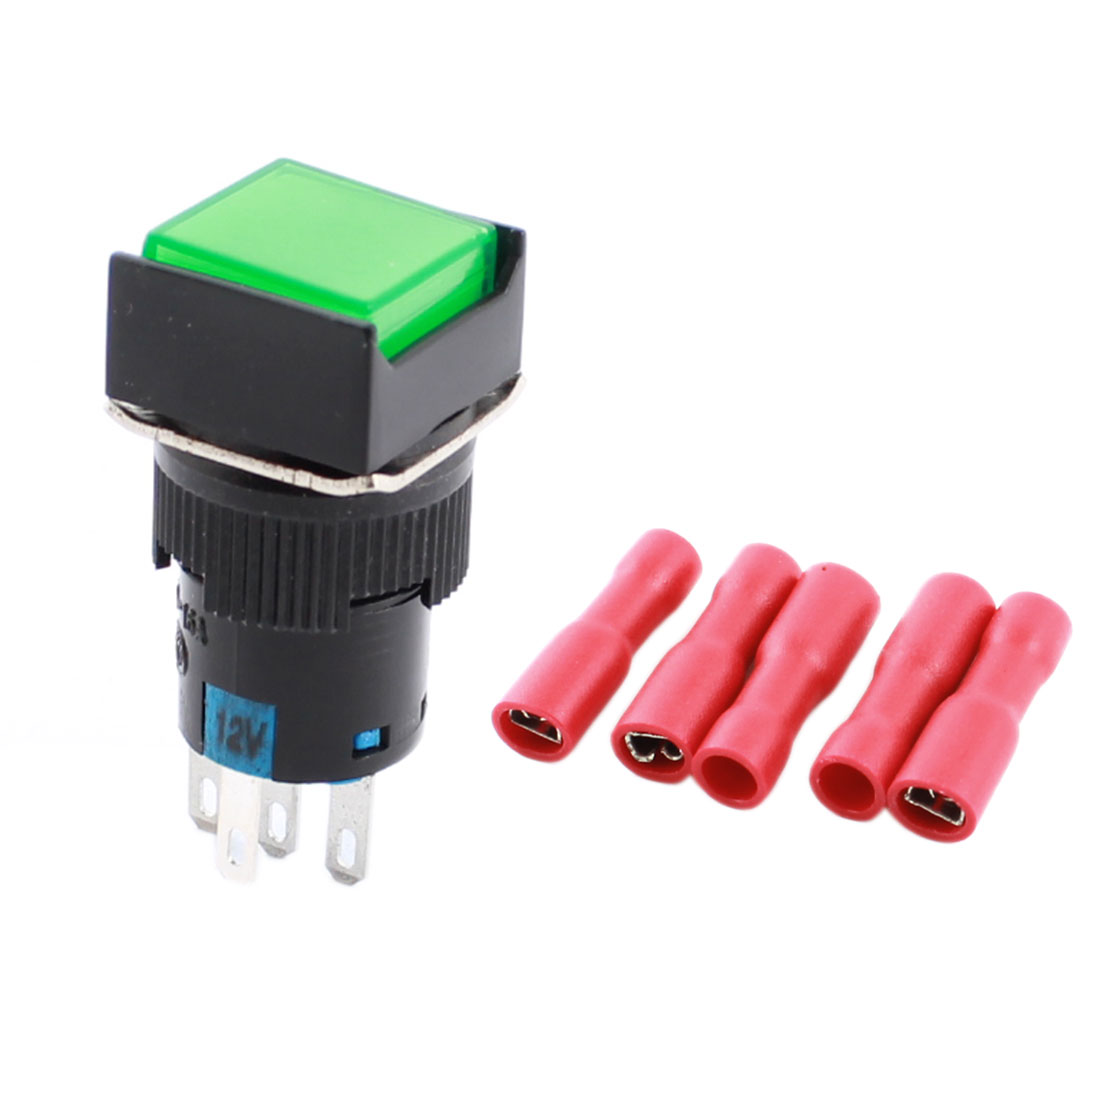 DC 12V Green Indicator Light 5Pins 16mm Thread Panel Mount SPDT Non Locking Square Pushbutton Switch + 5pcs Crimp Terminals